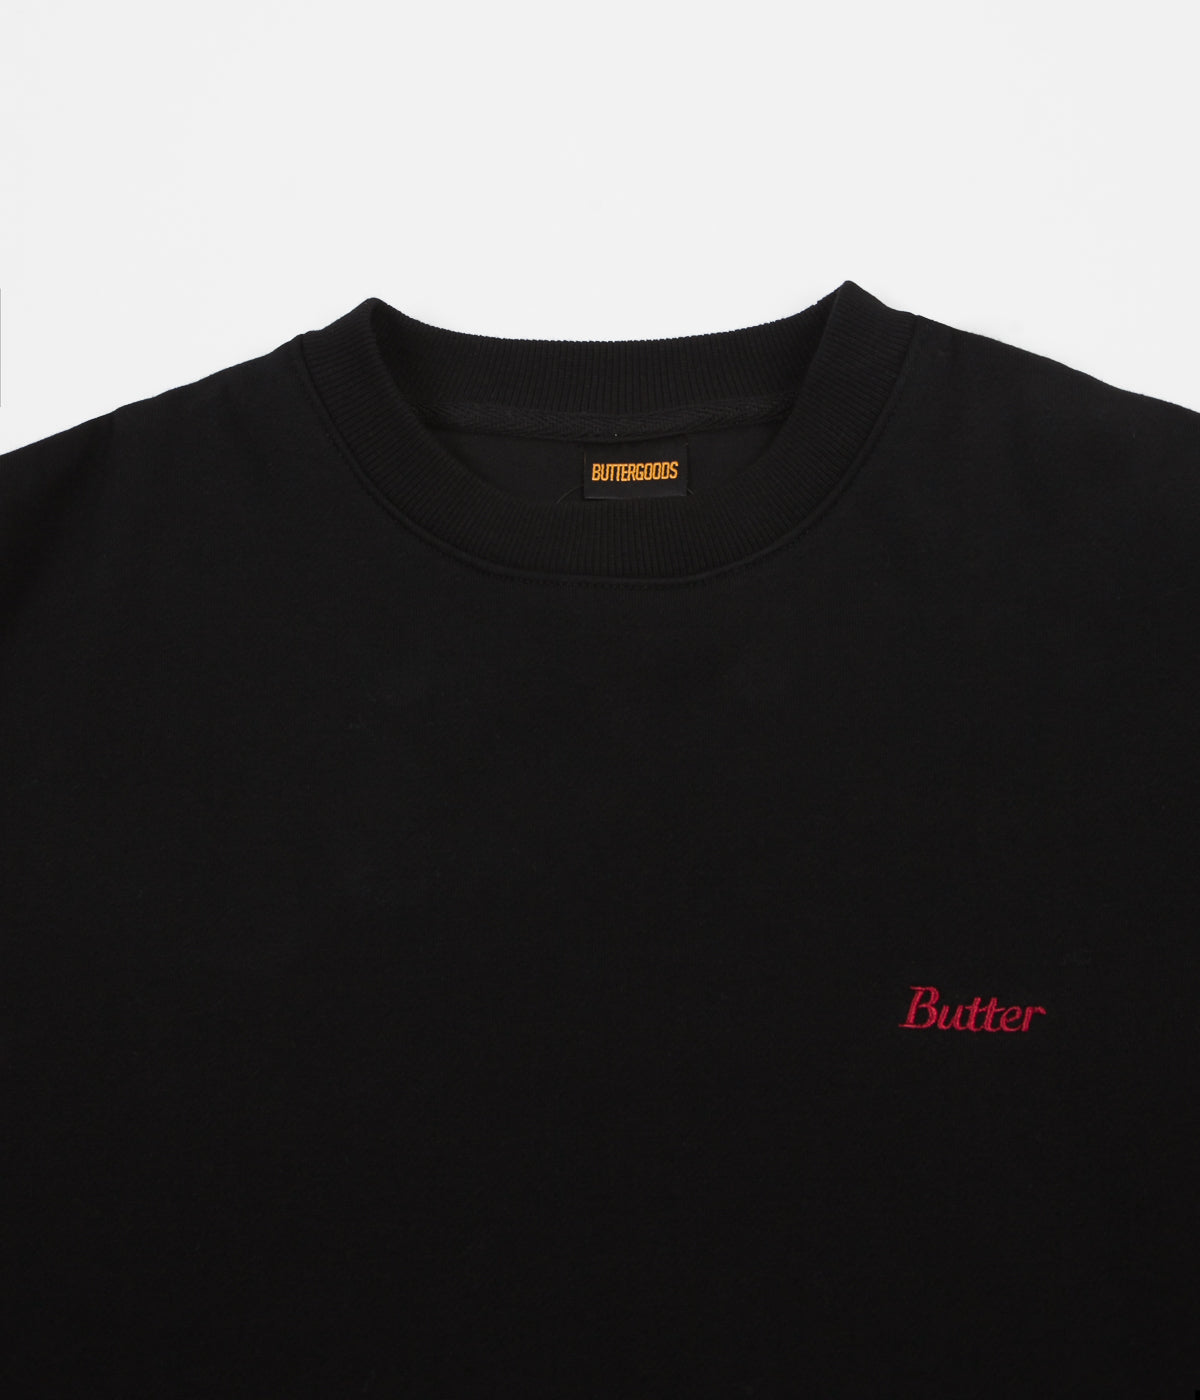 Butter Goods Bristol Crewneck Sweatshirt - Black